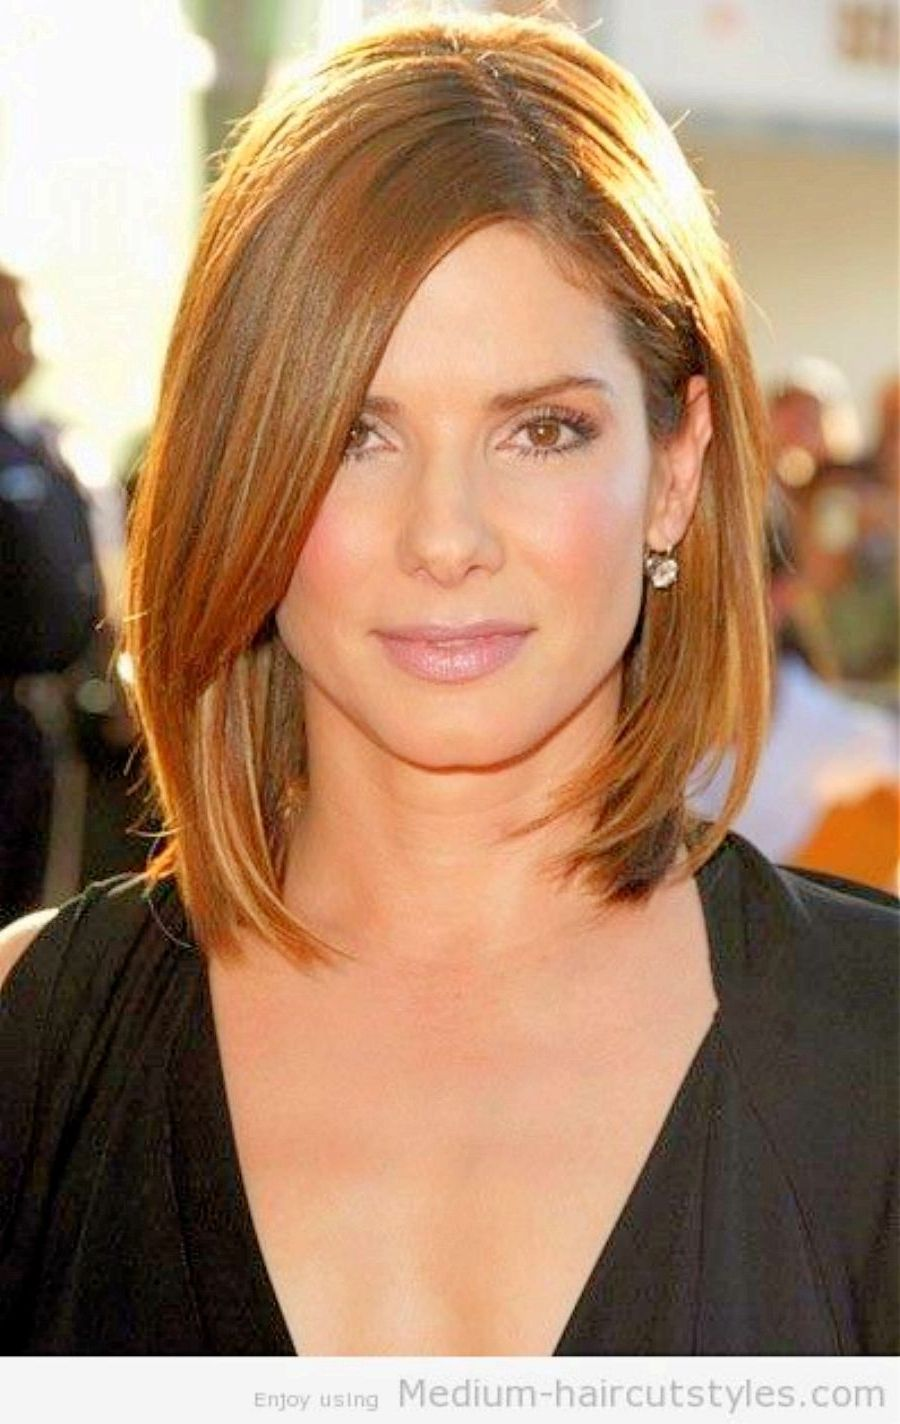 Hairstyles For Women Over 11 With Round Face Best Hairstyles For